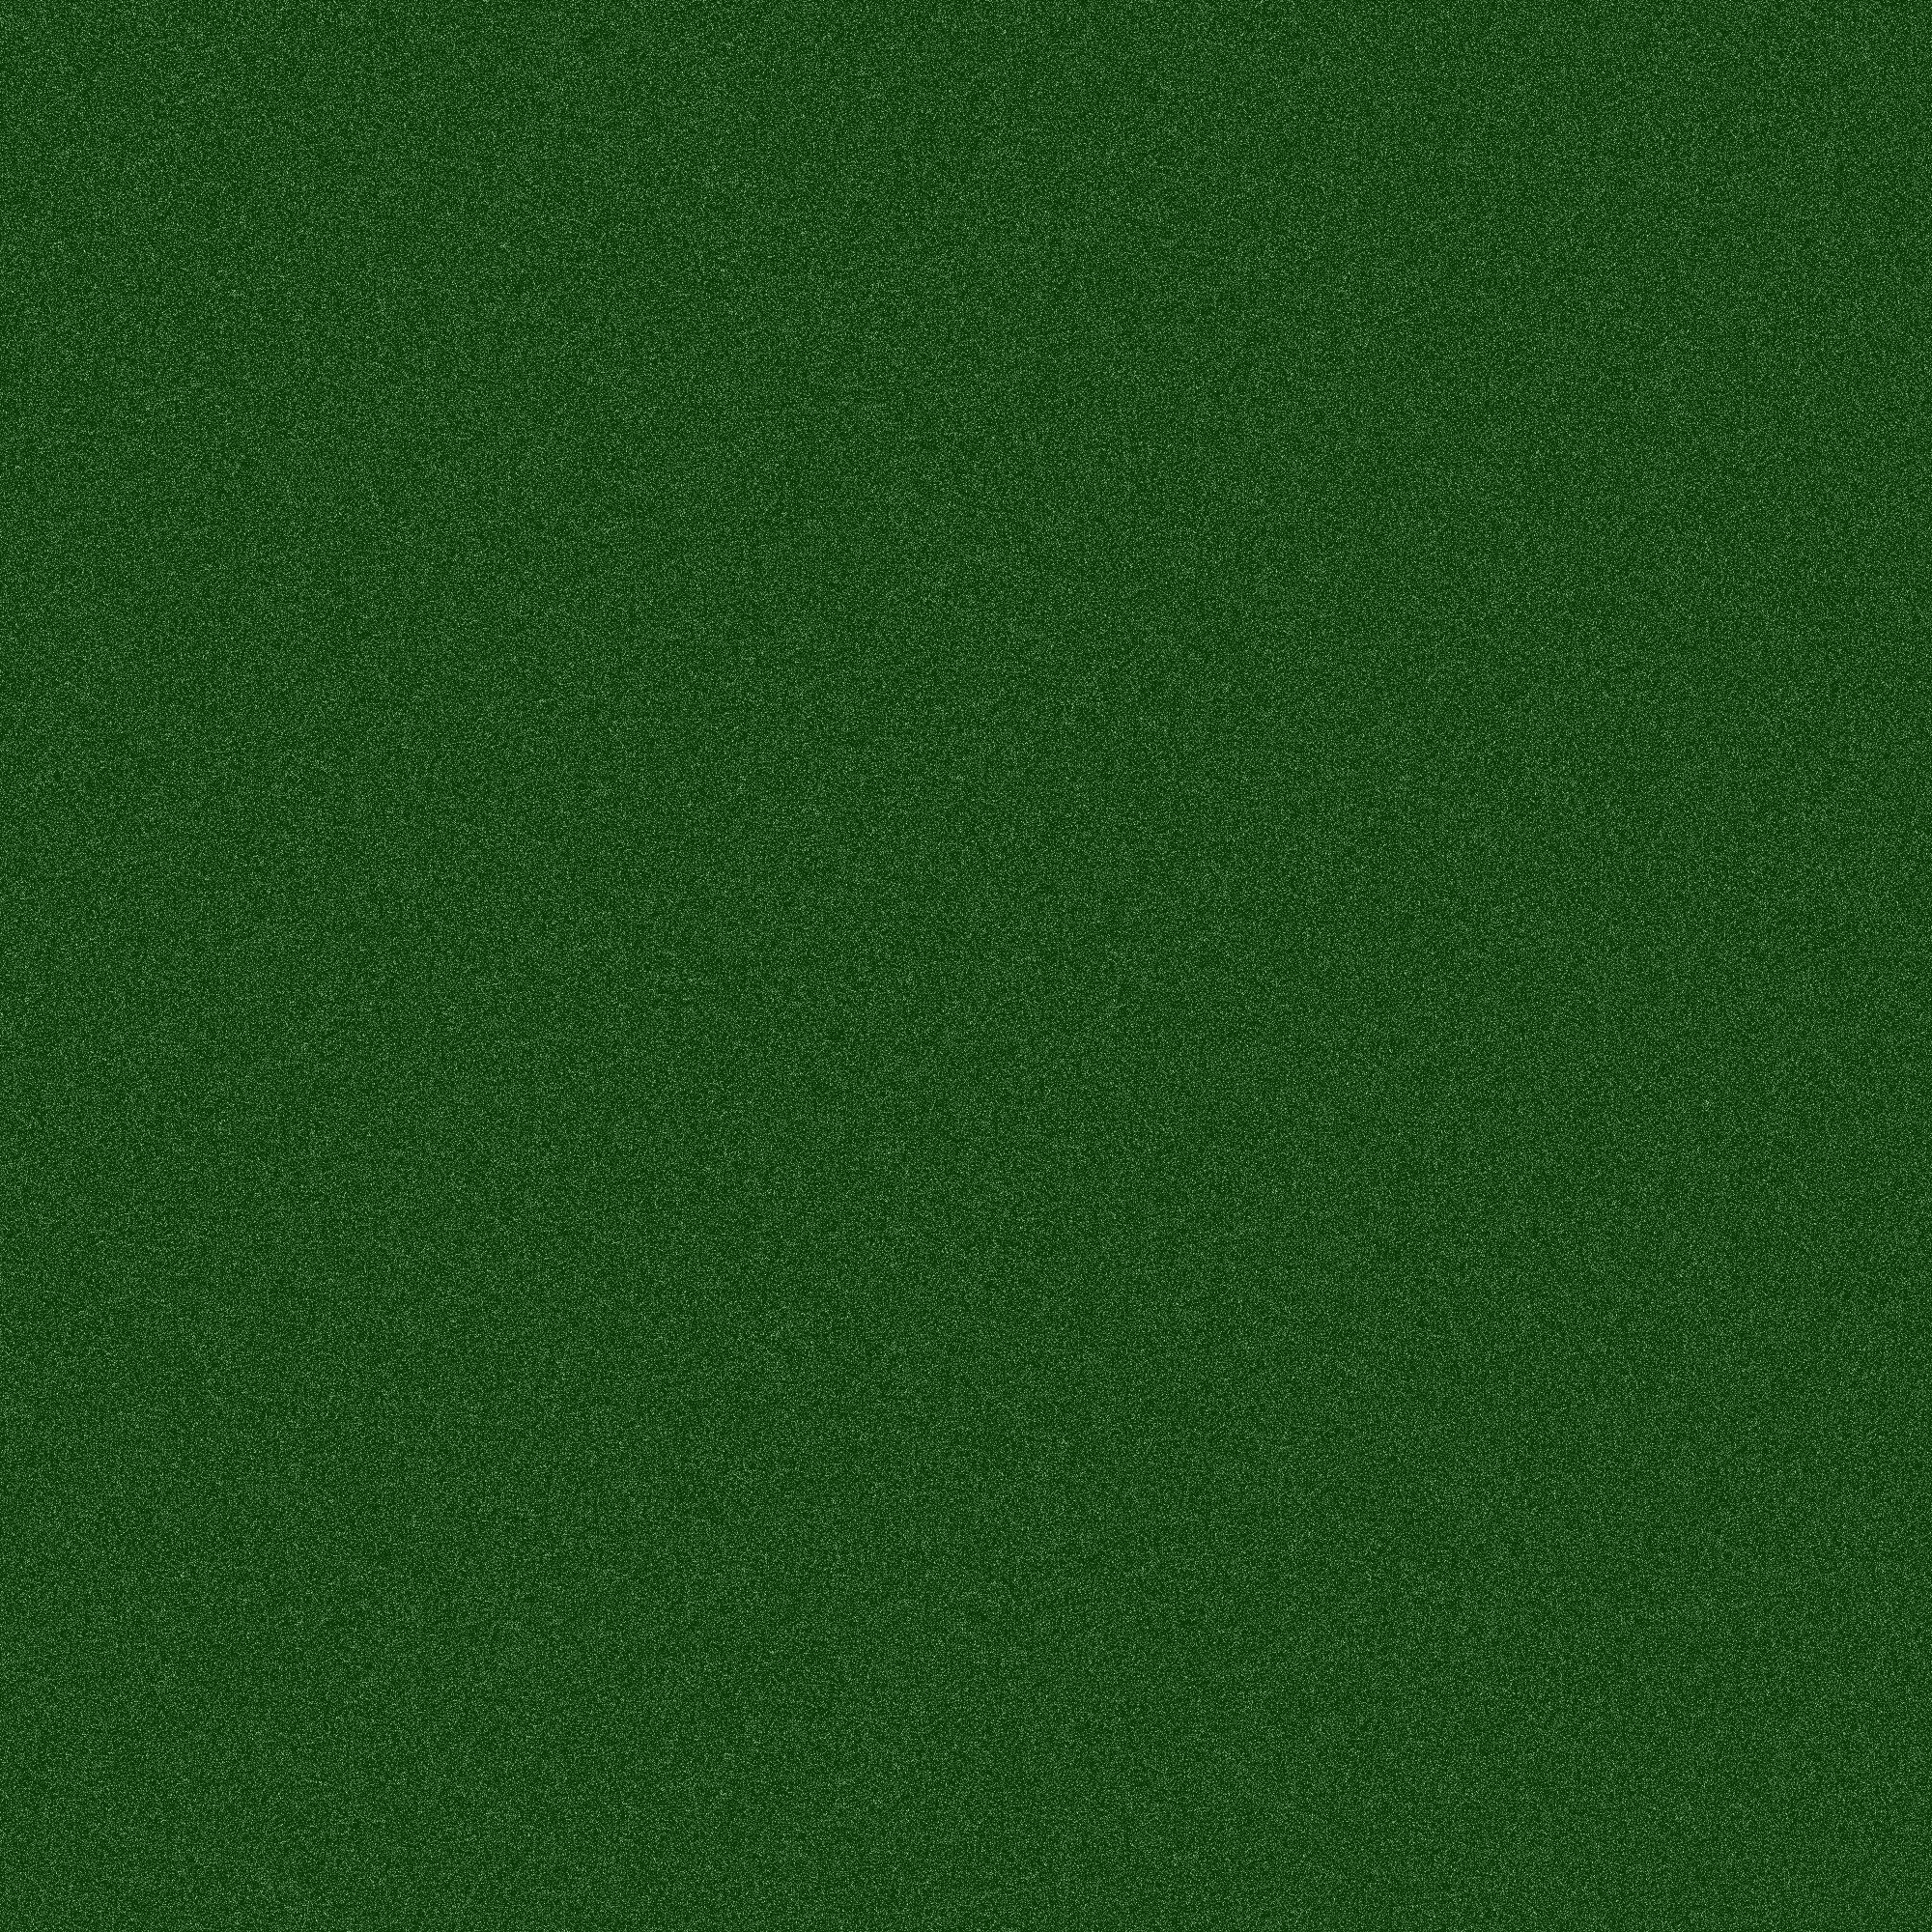 noize_background_darkgreen